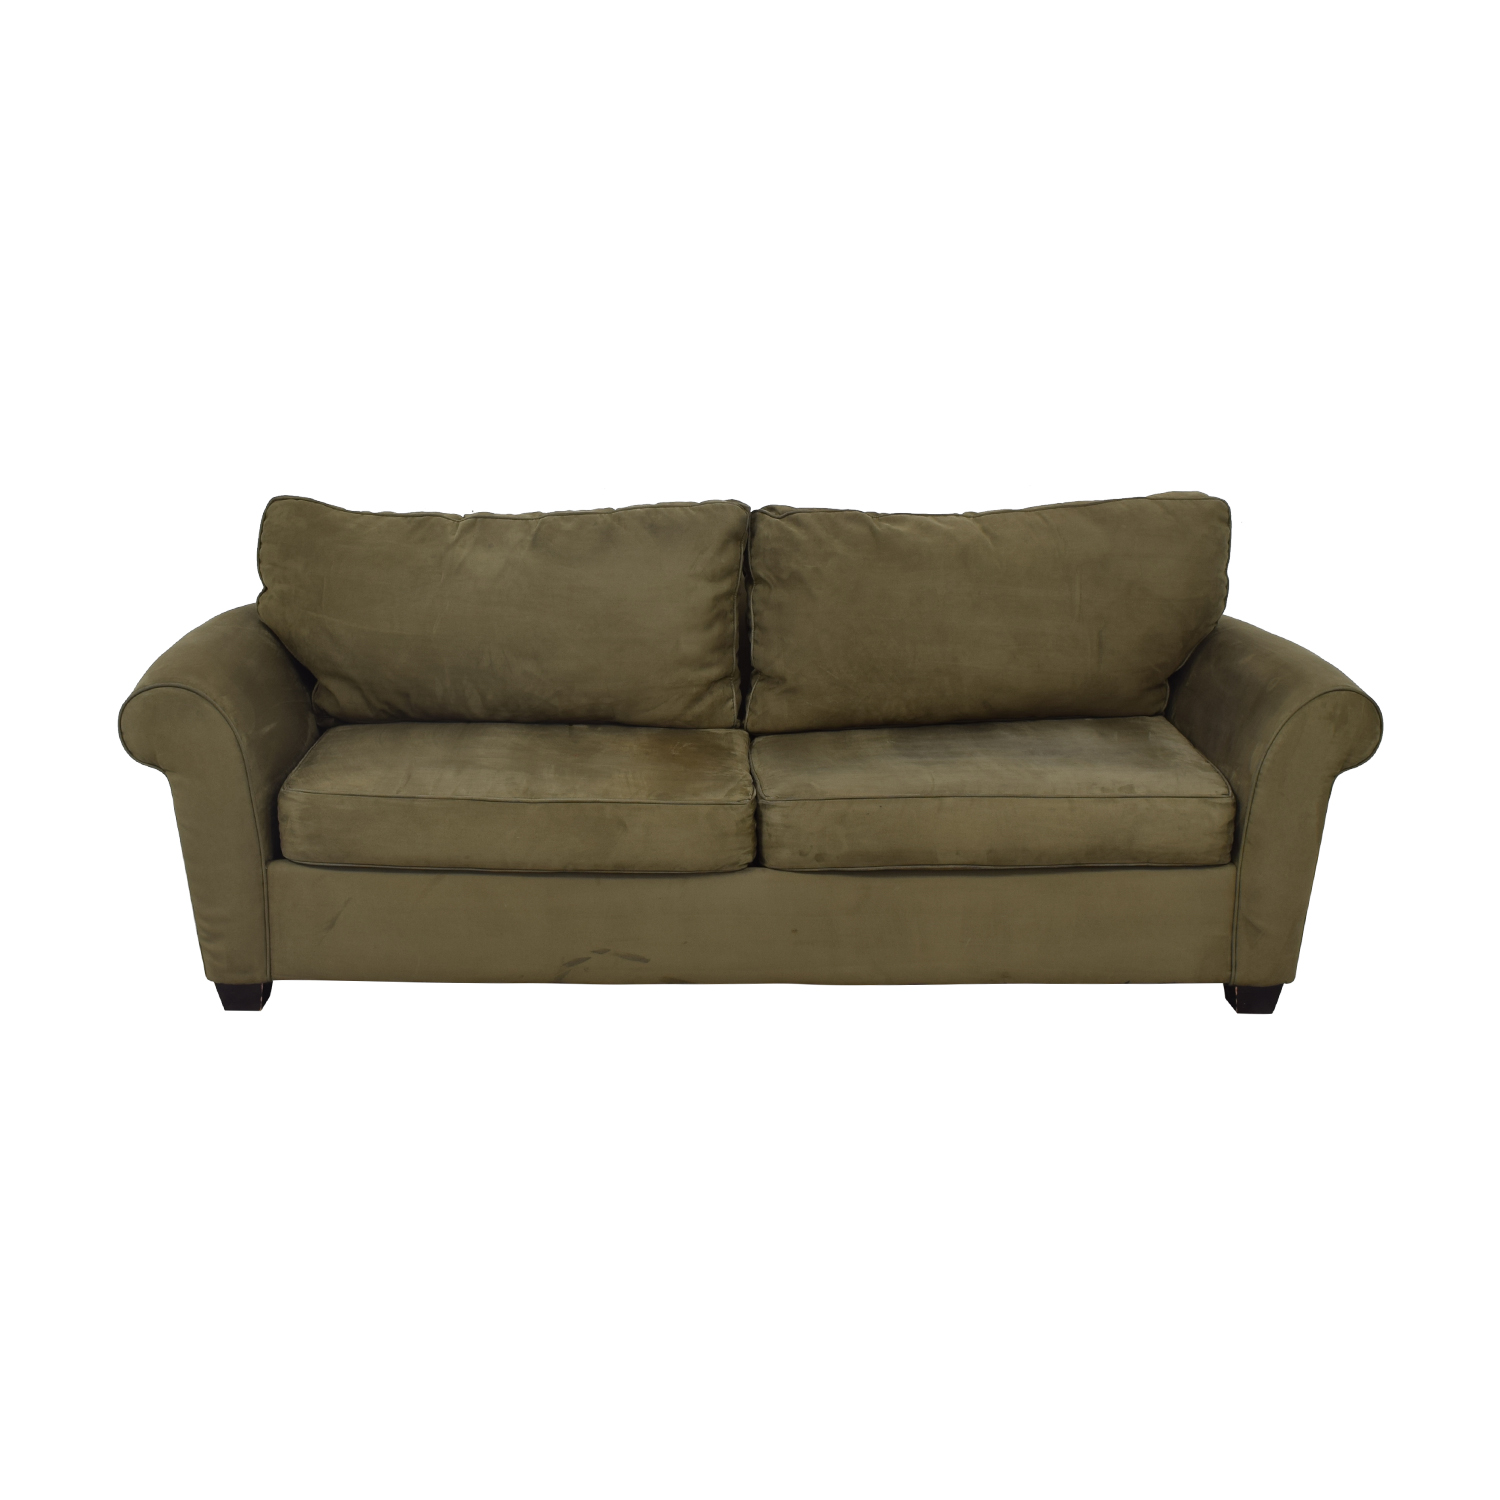 Bauhaus Furniture Bauhaus Two-Cushion Sofa green